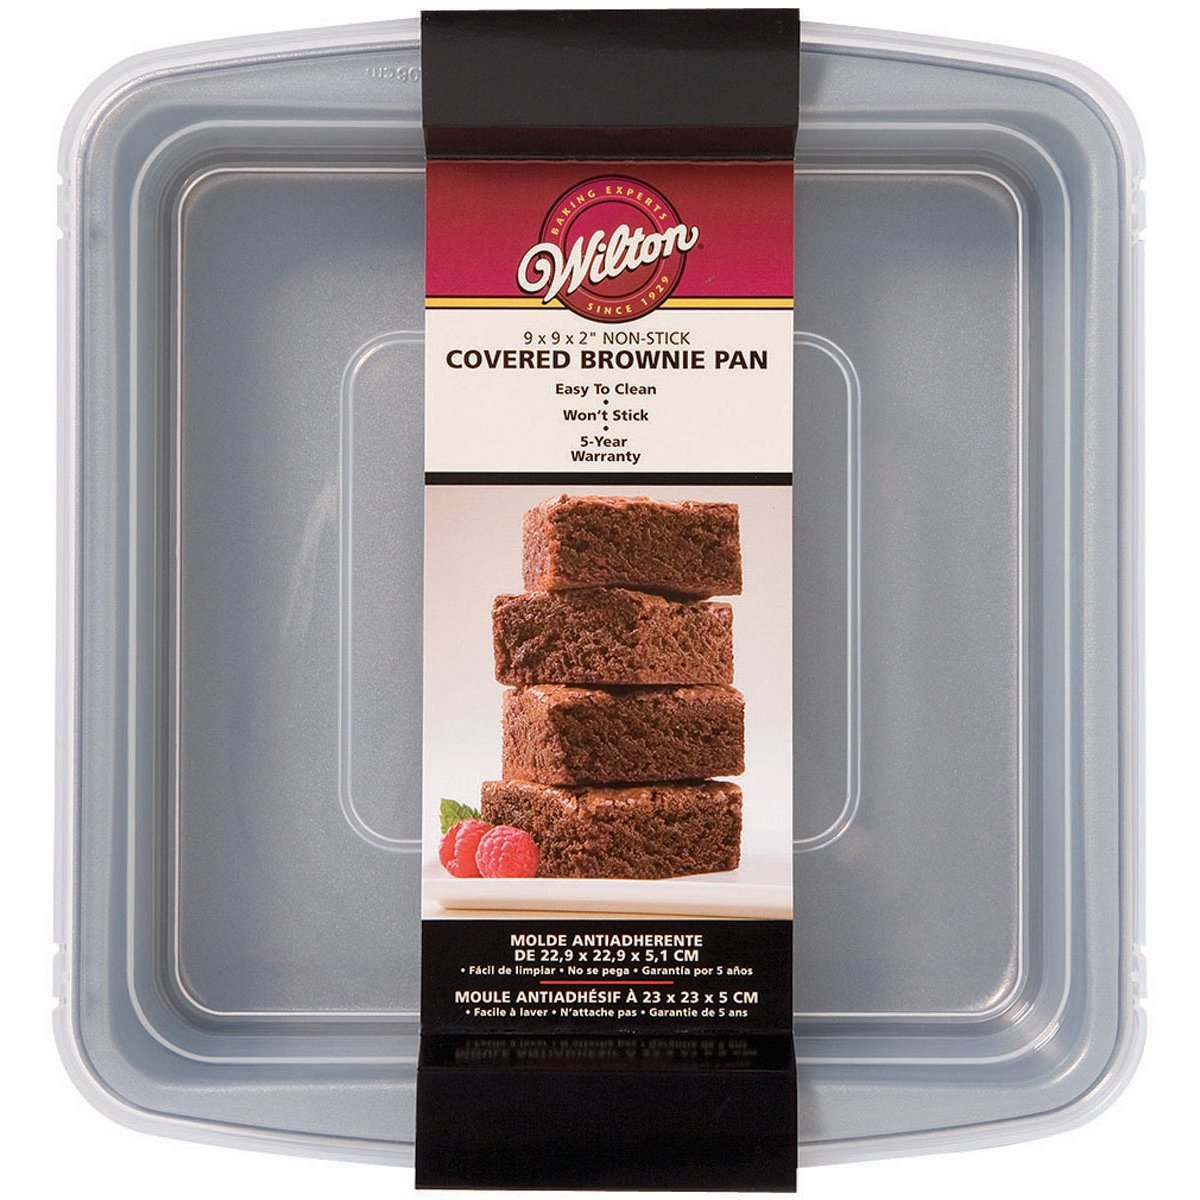 Wilton Recipe Right Non-Stick Square Brownie Baking Pan with Lid, Great for Transporting Your Dessert from Home to Party, 9-Inch x 9-Inch